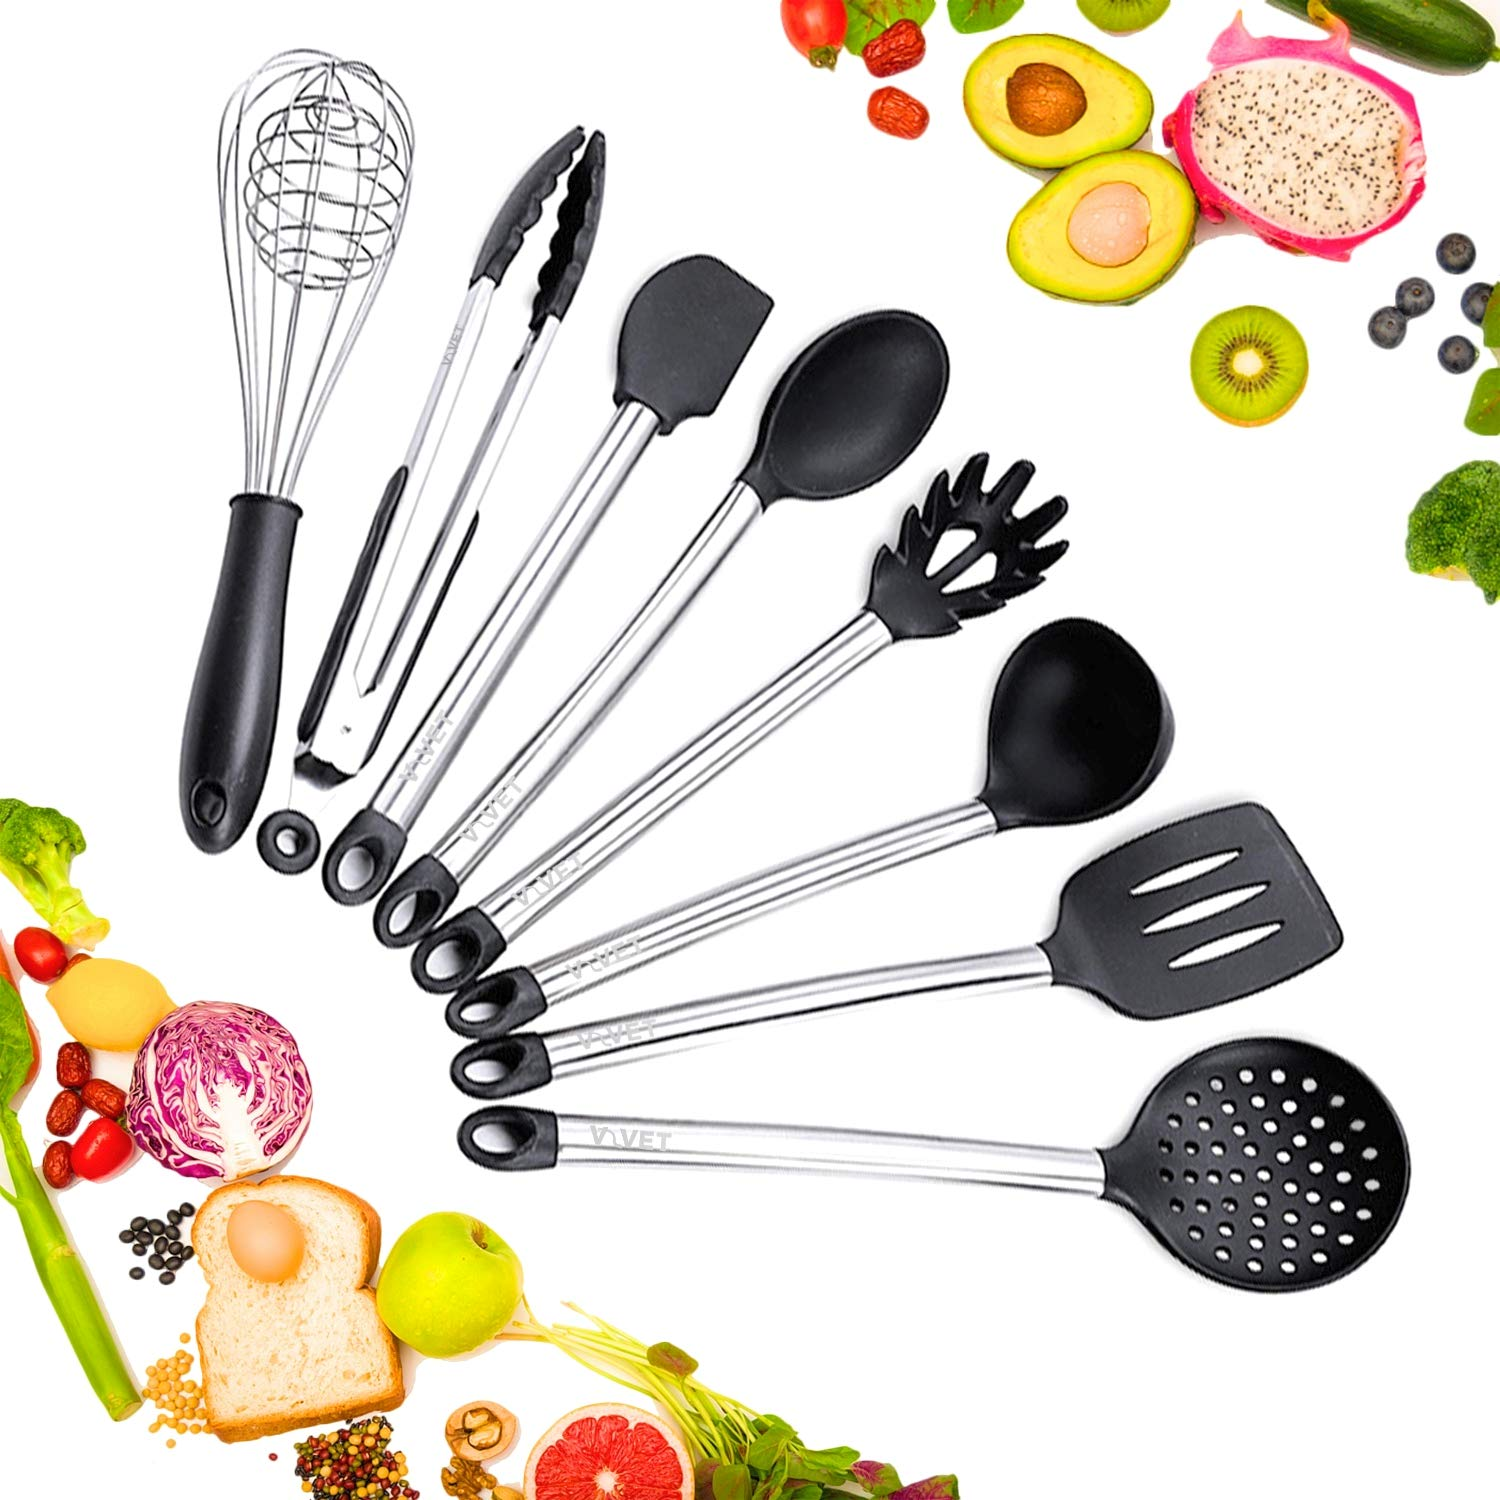 8 Piece Kitchen Utensil Set: Utensils for Cooking - Silicone Spatula Sets for Adults - Stainless Steel Handle - Tools and Gadgets - Spatulas and Spoons for Cookware - No Holder Required - Non Stick